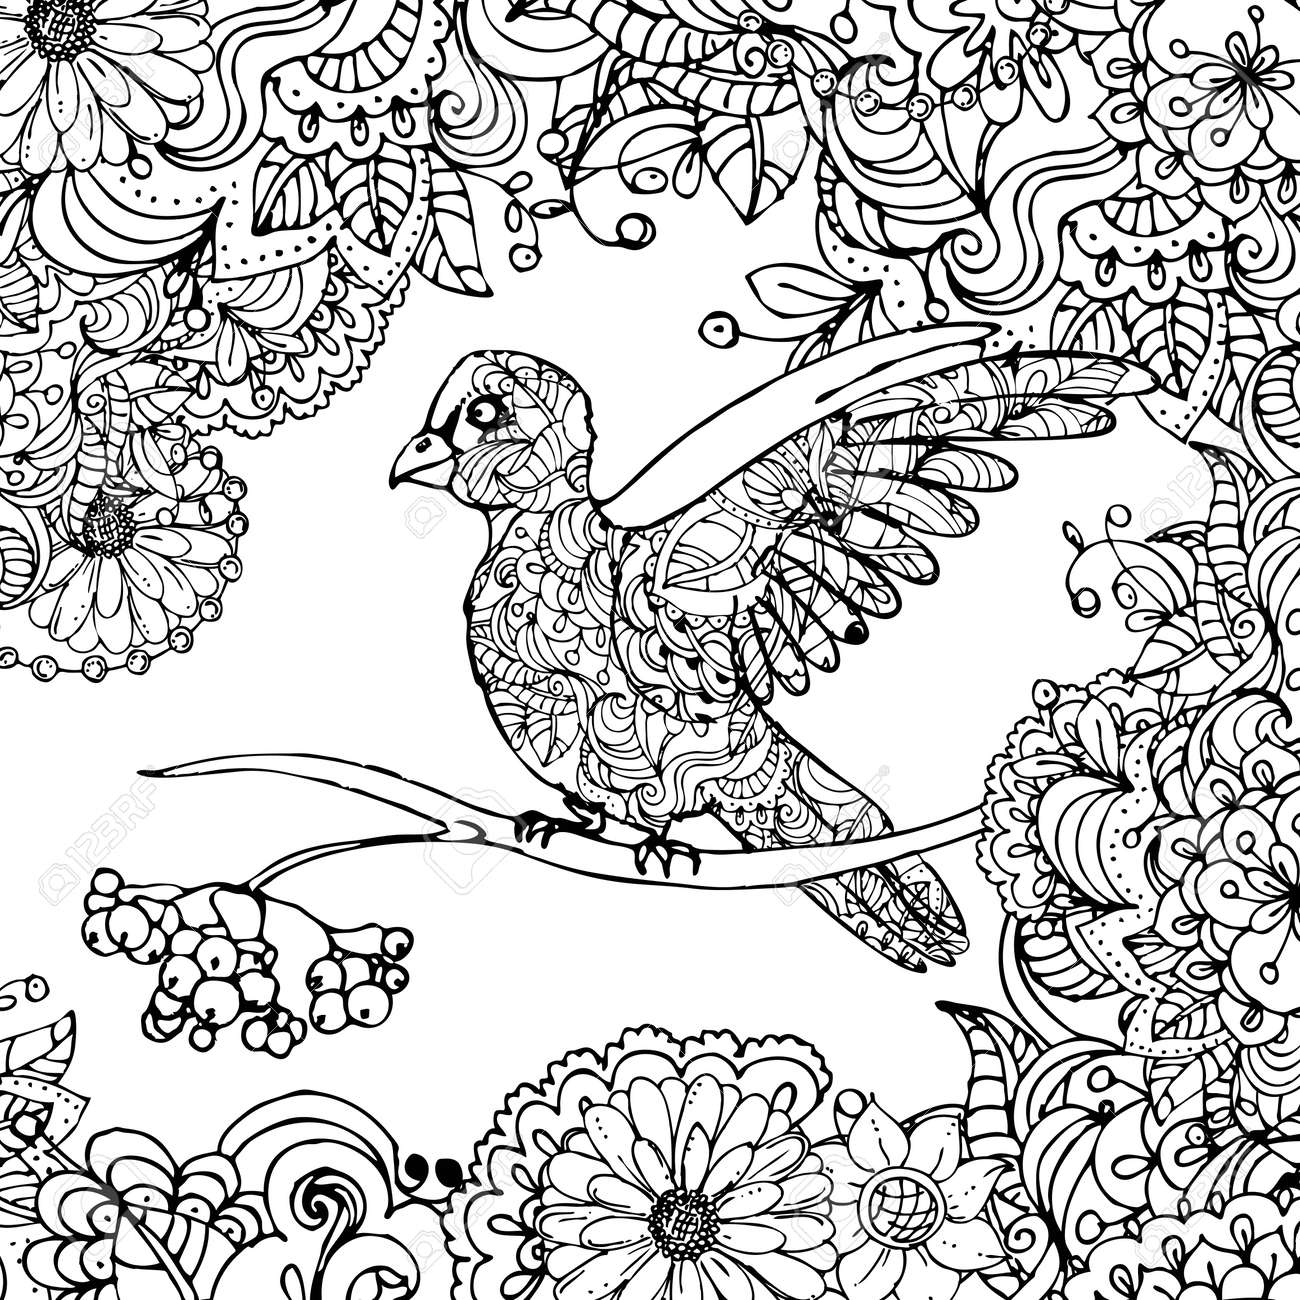 hand drawn vector illustration of doodle bird sitting on branch in leaves isolated on white background. - 156880324